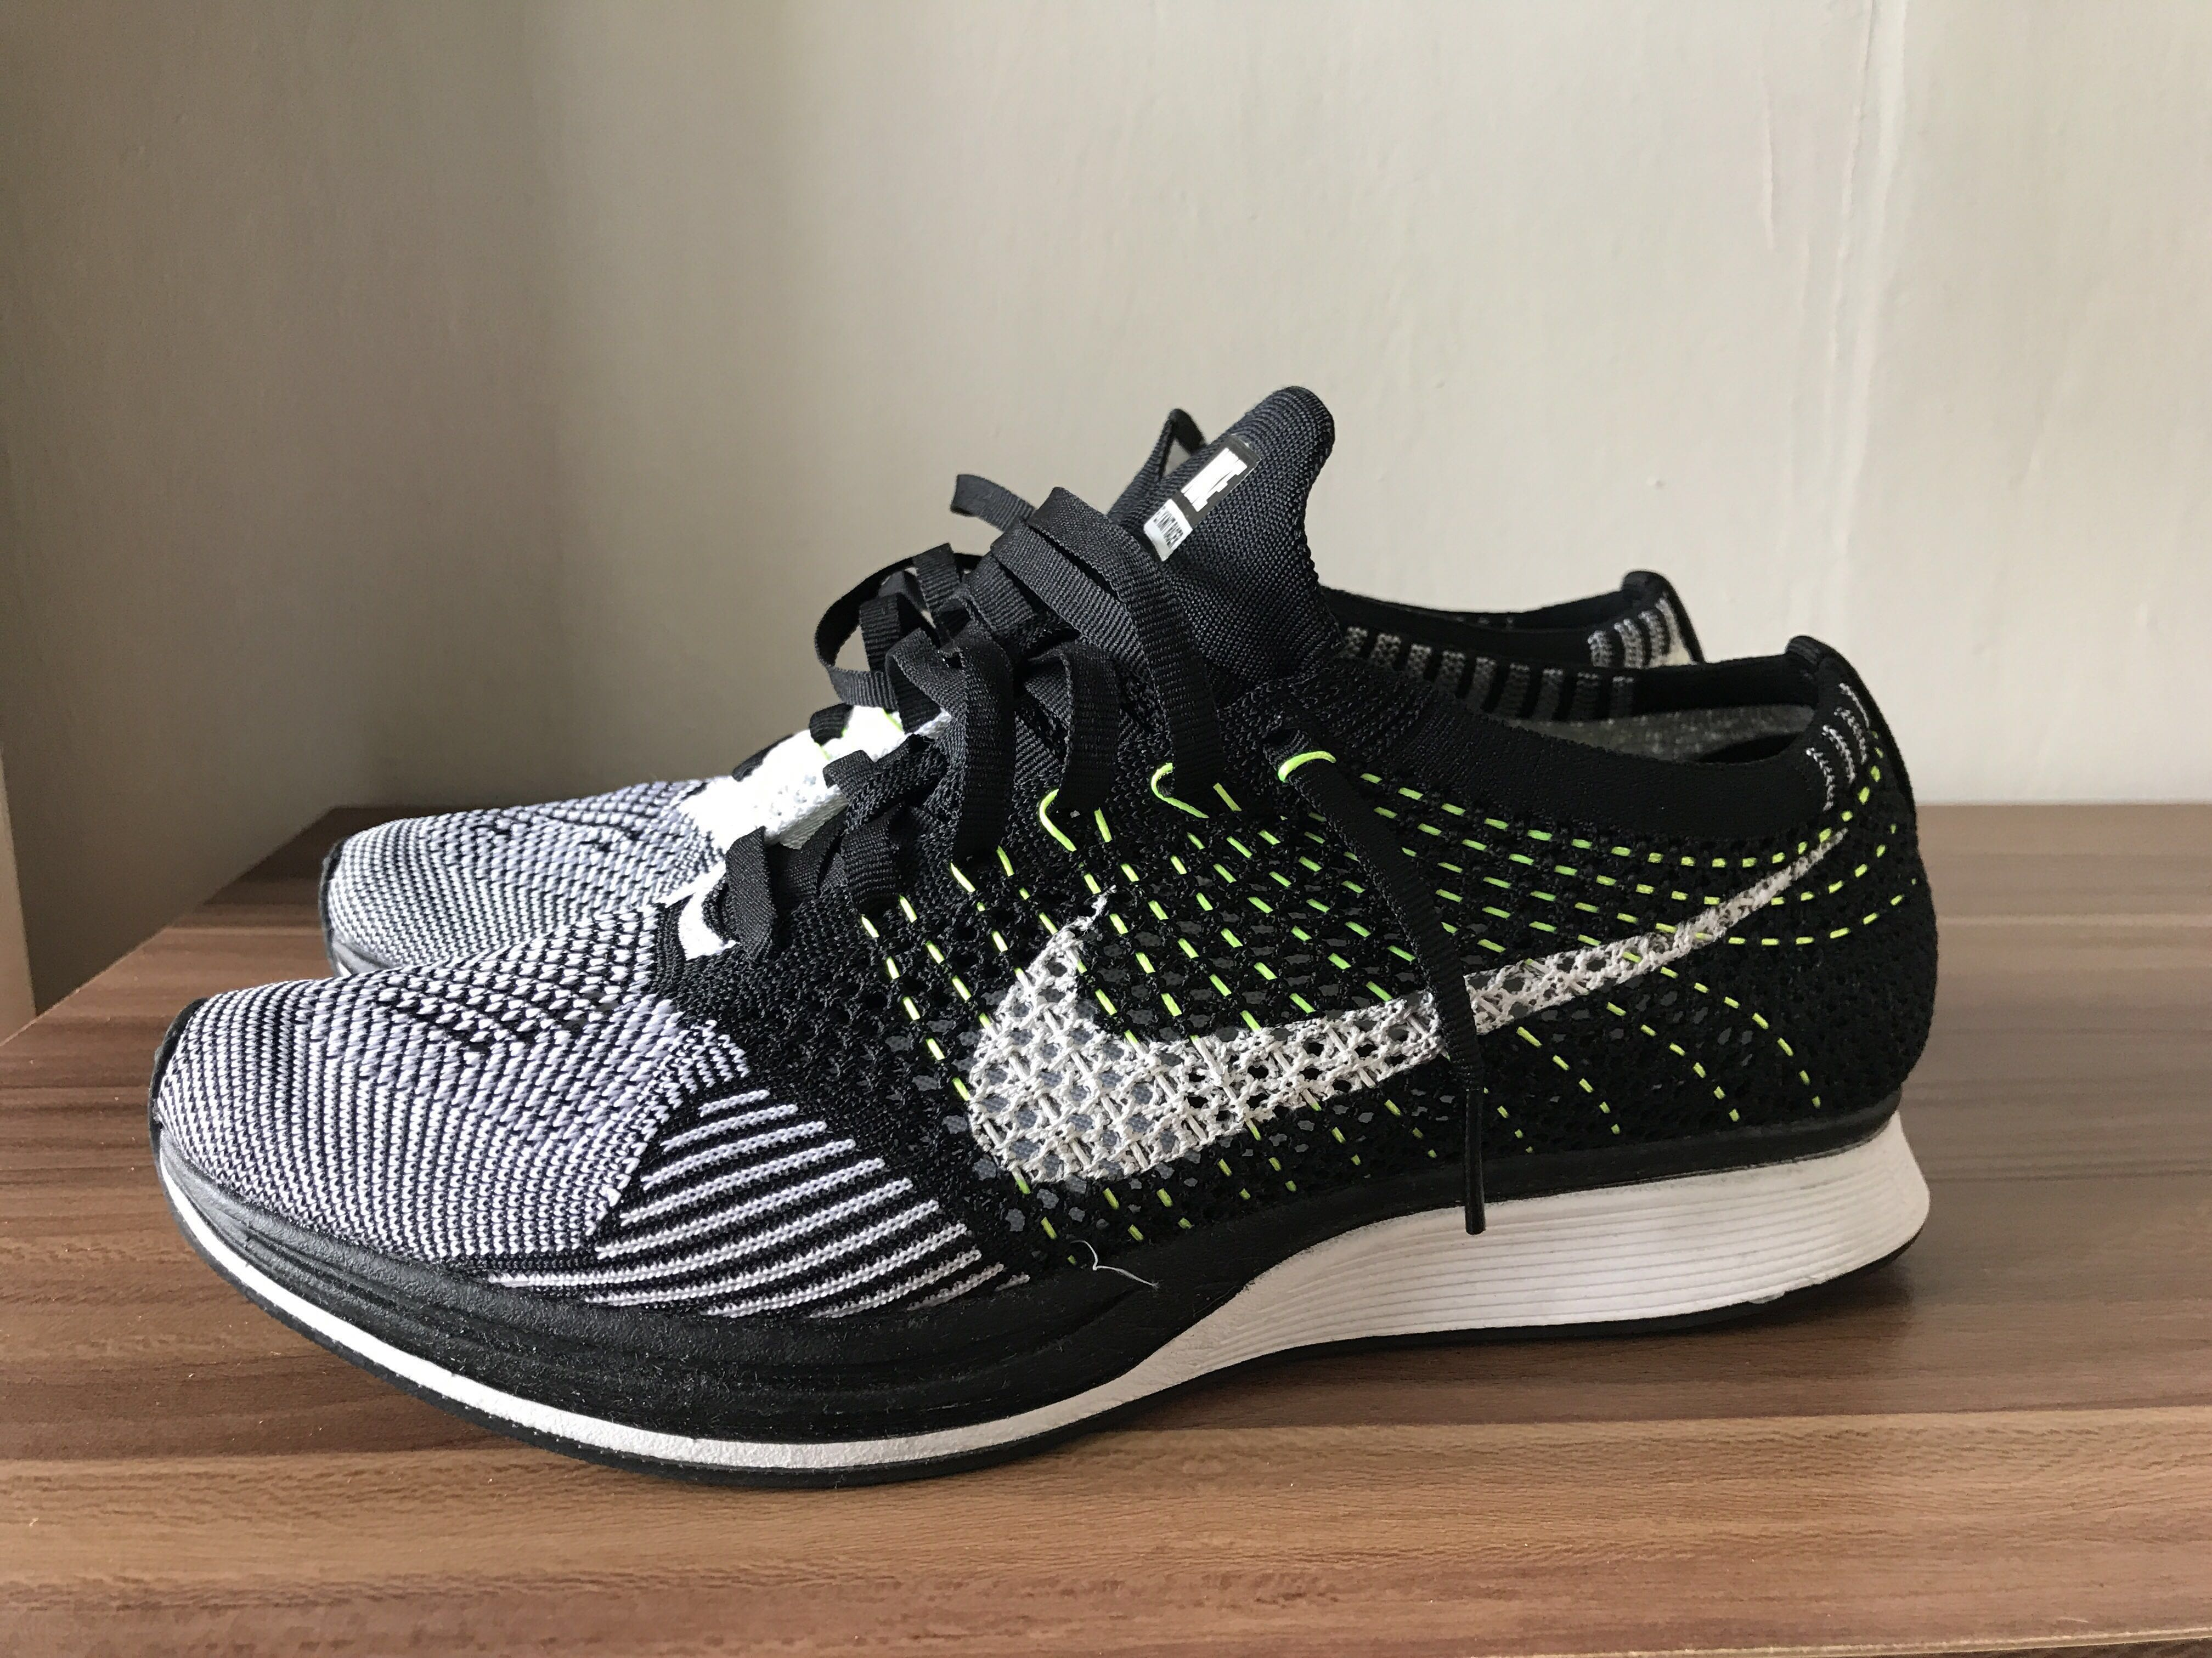 low price nike flyknit racer orca 3.0 77779 8463c